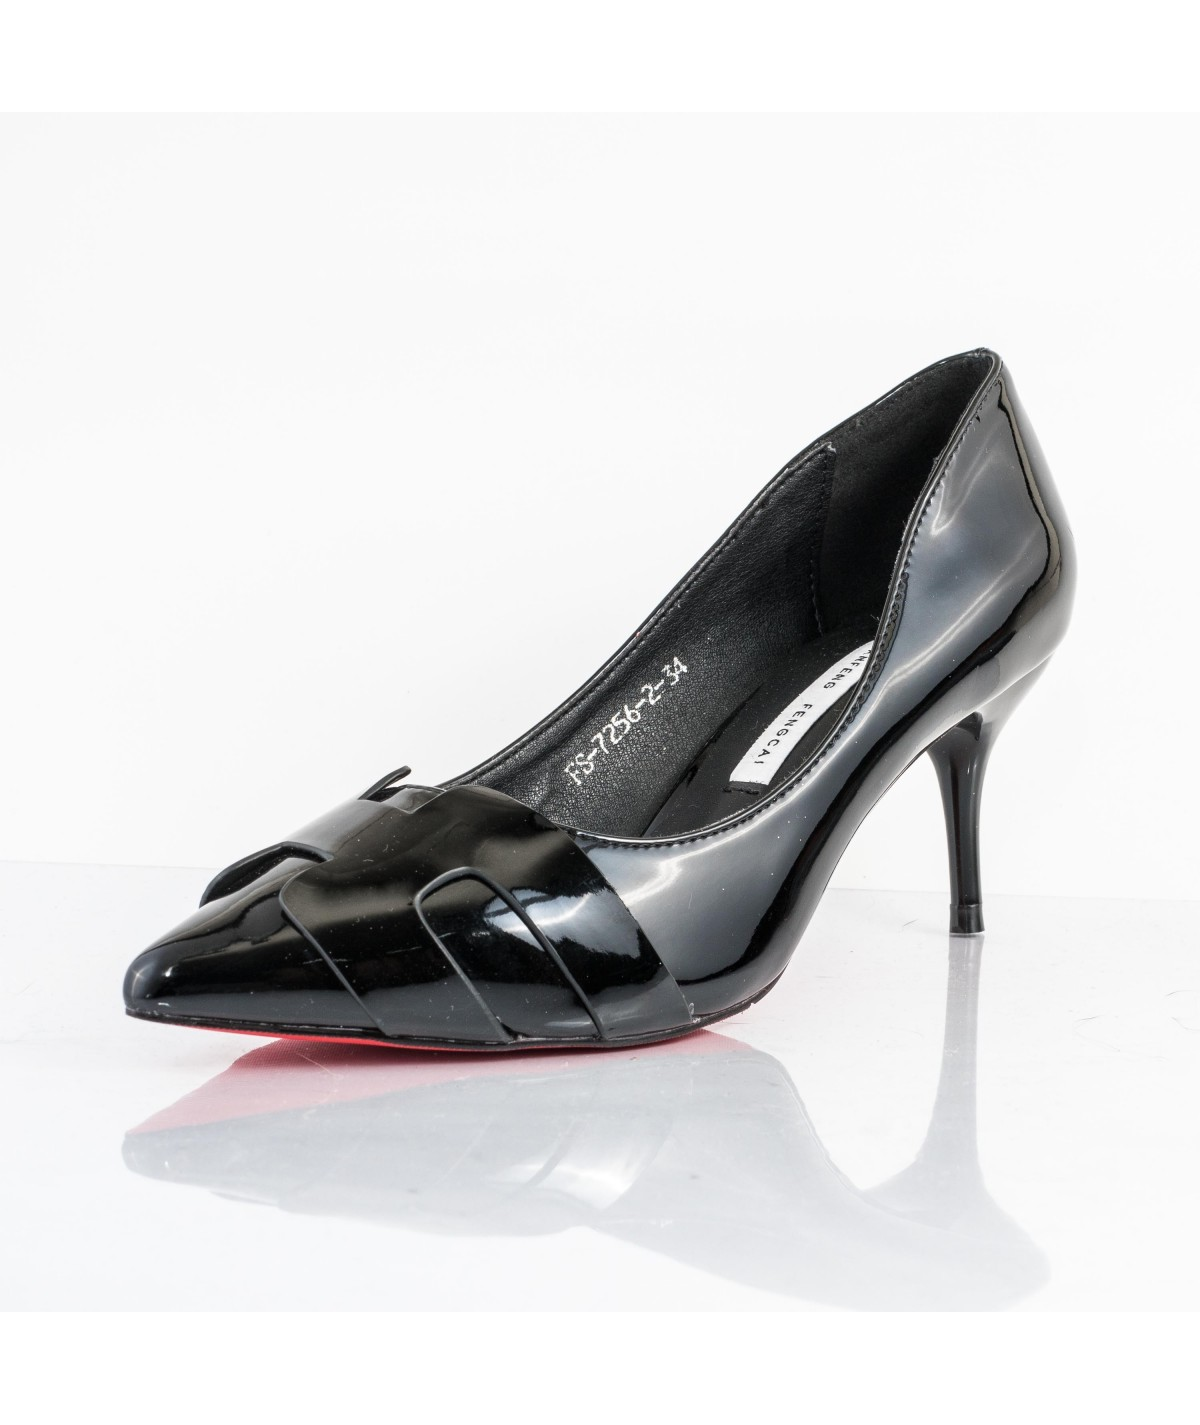 Nerissa Color Black Material Patent Leather Size 34, 220cm